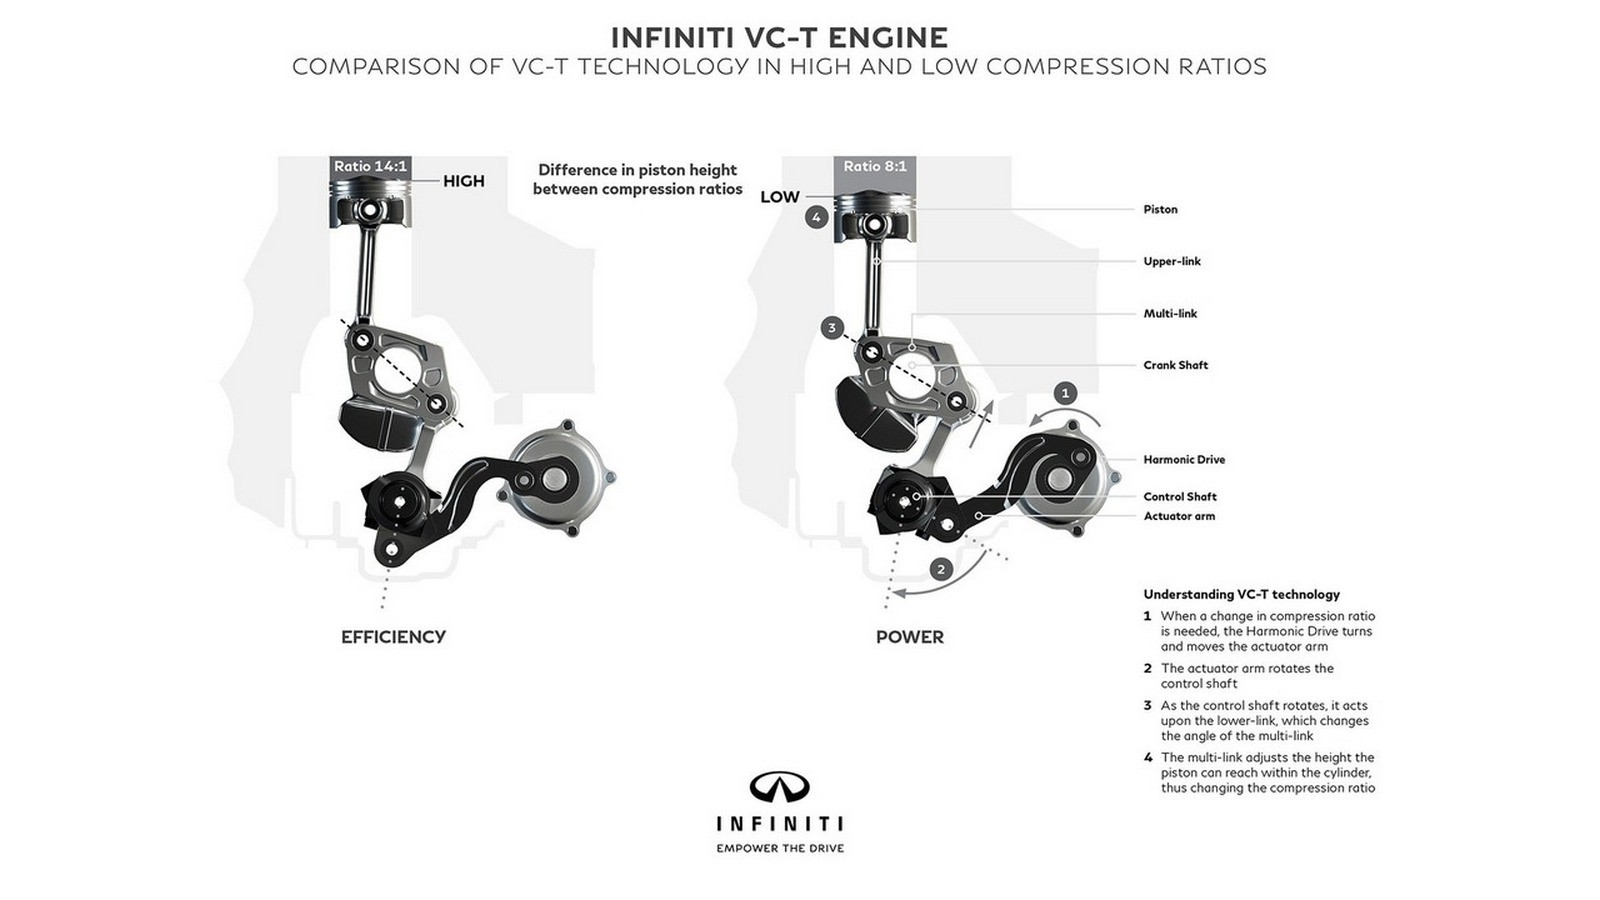 Infiniti Variable Compression-Turbocharged (VC-T)